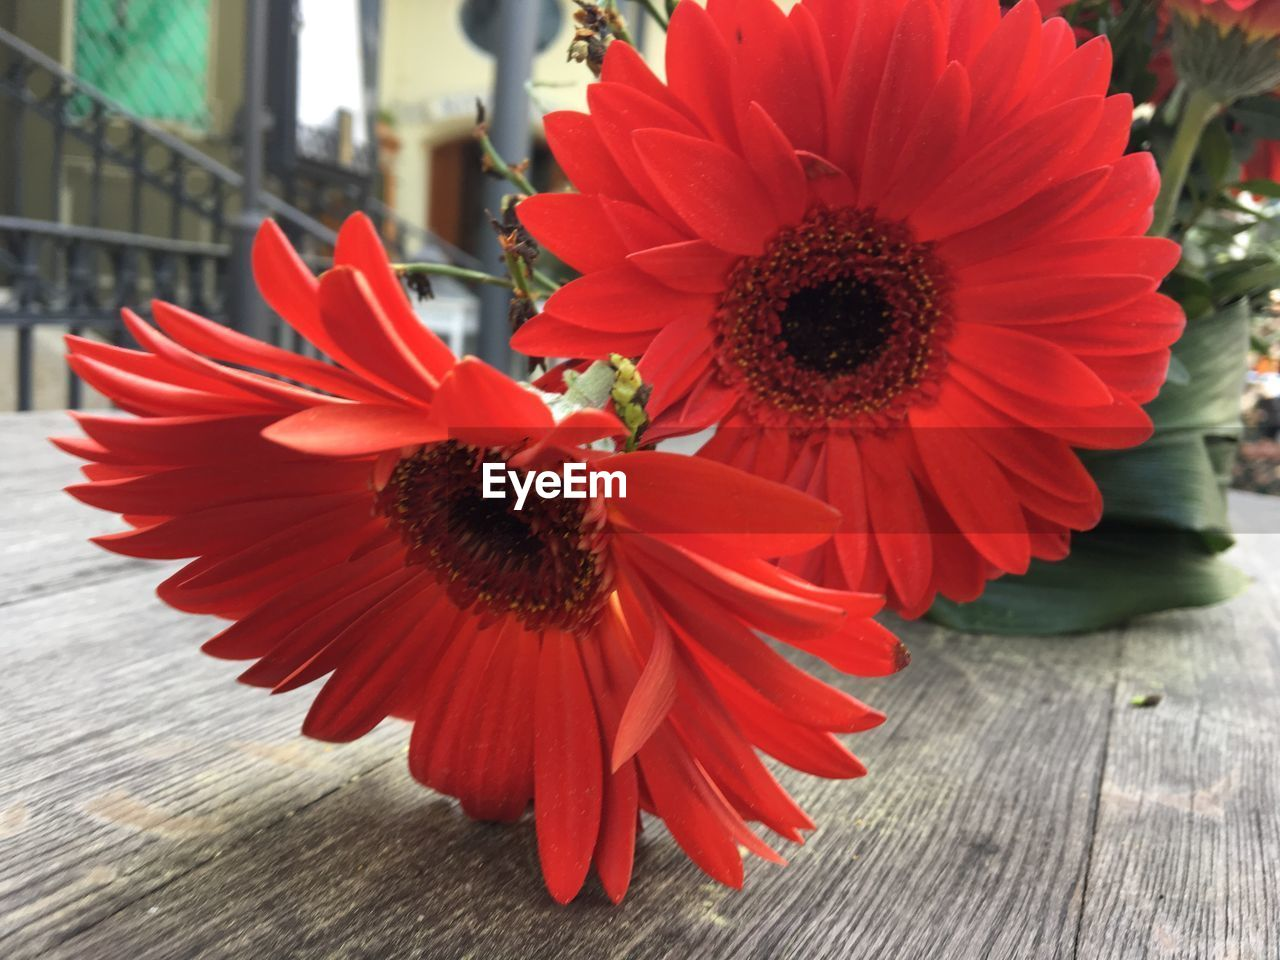 flowering plant, flower, petal, flower head, inflorescence, fragility, freshness, vulnerability, beauty in nature, plant, pollen, close-up, growth, red, nature, daisy, no people, gerbera daisy, focus on foreground, outdoors